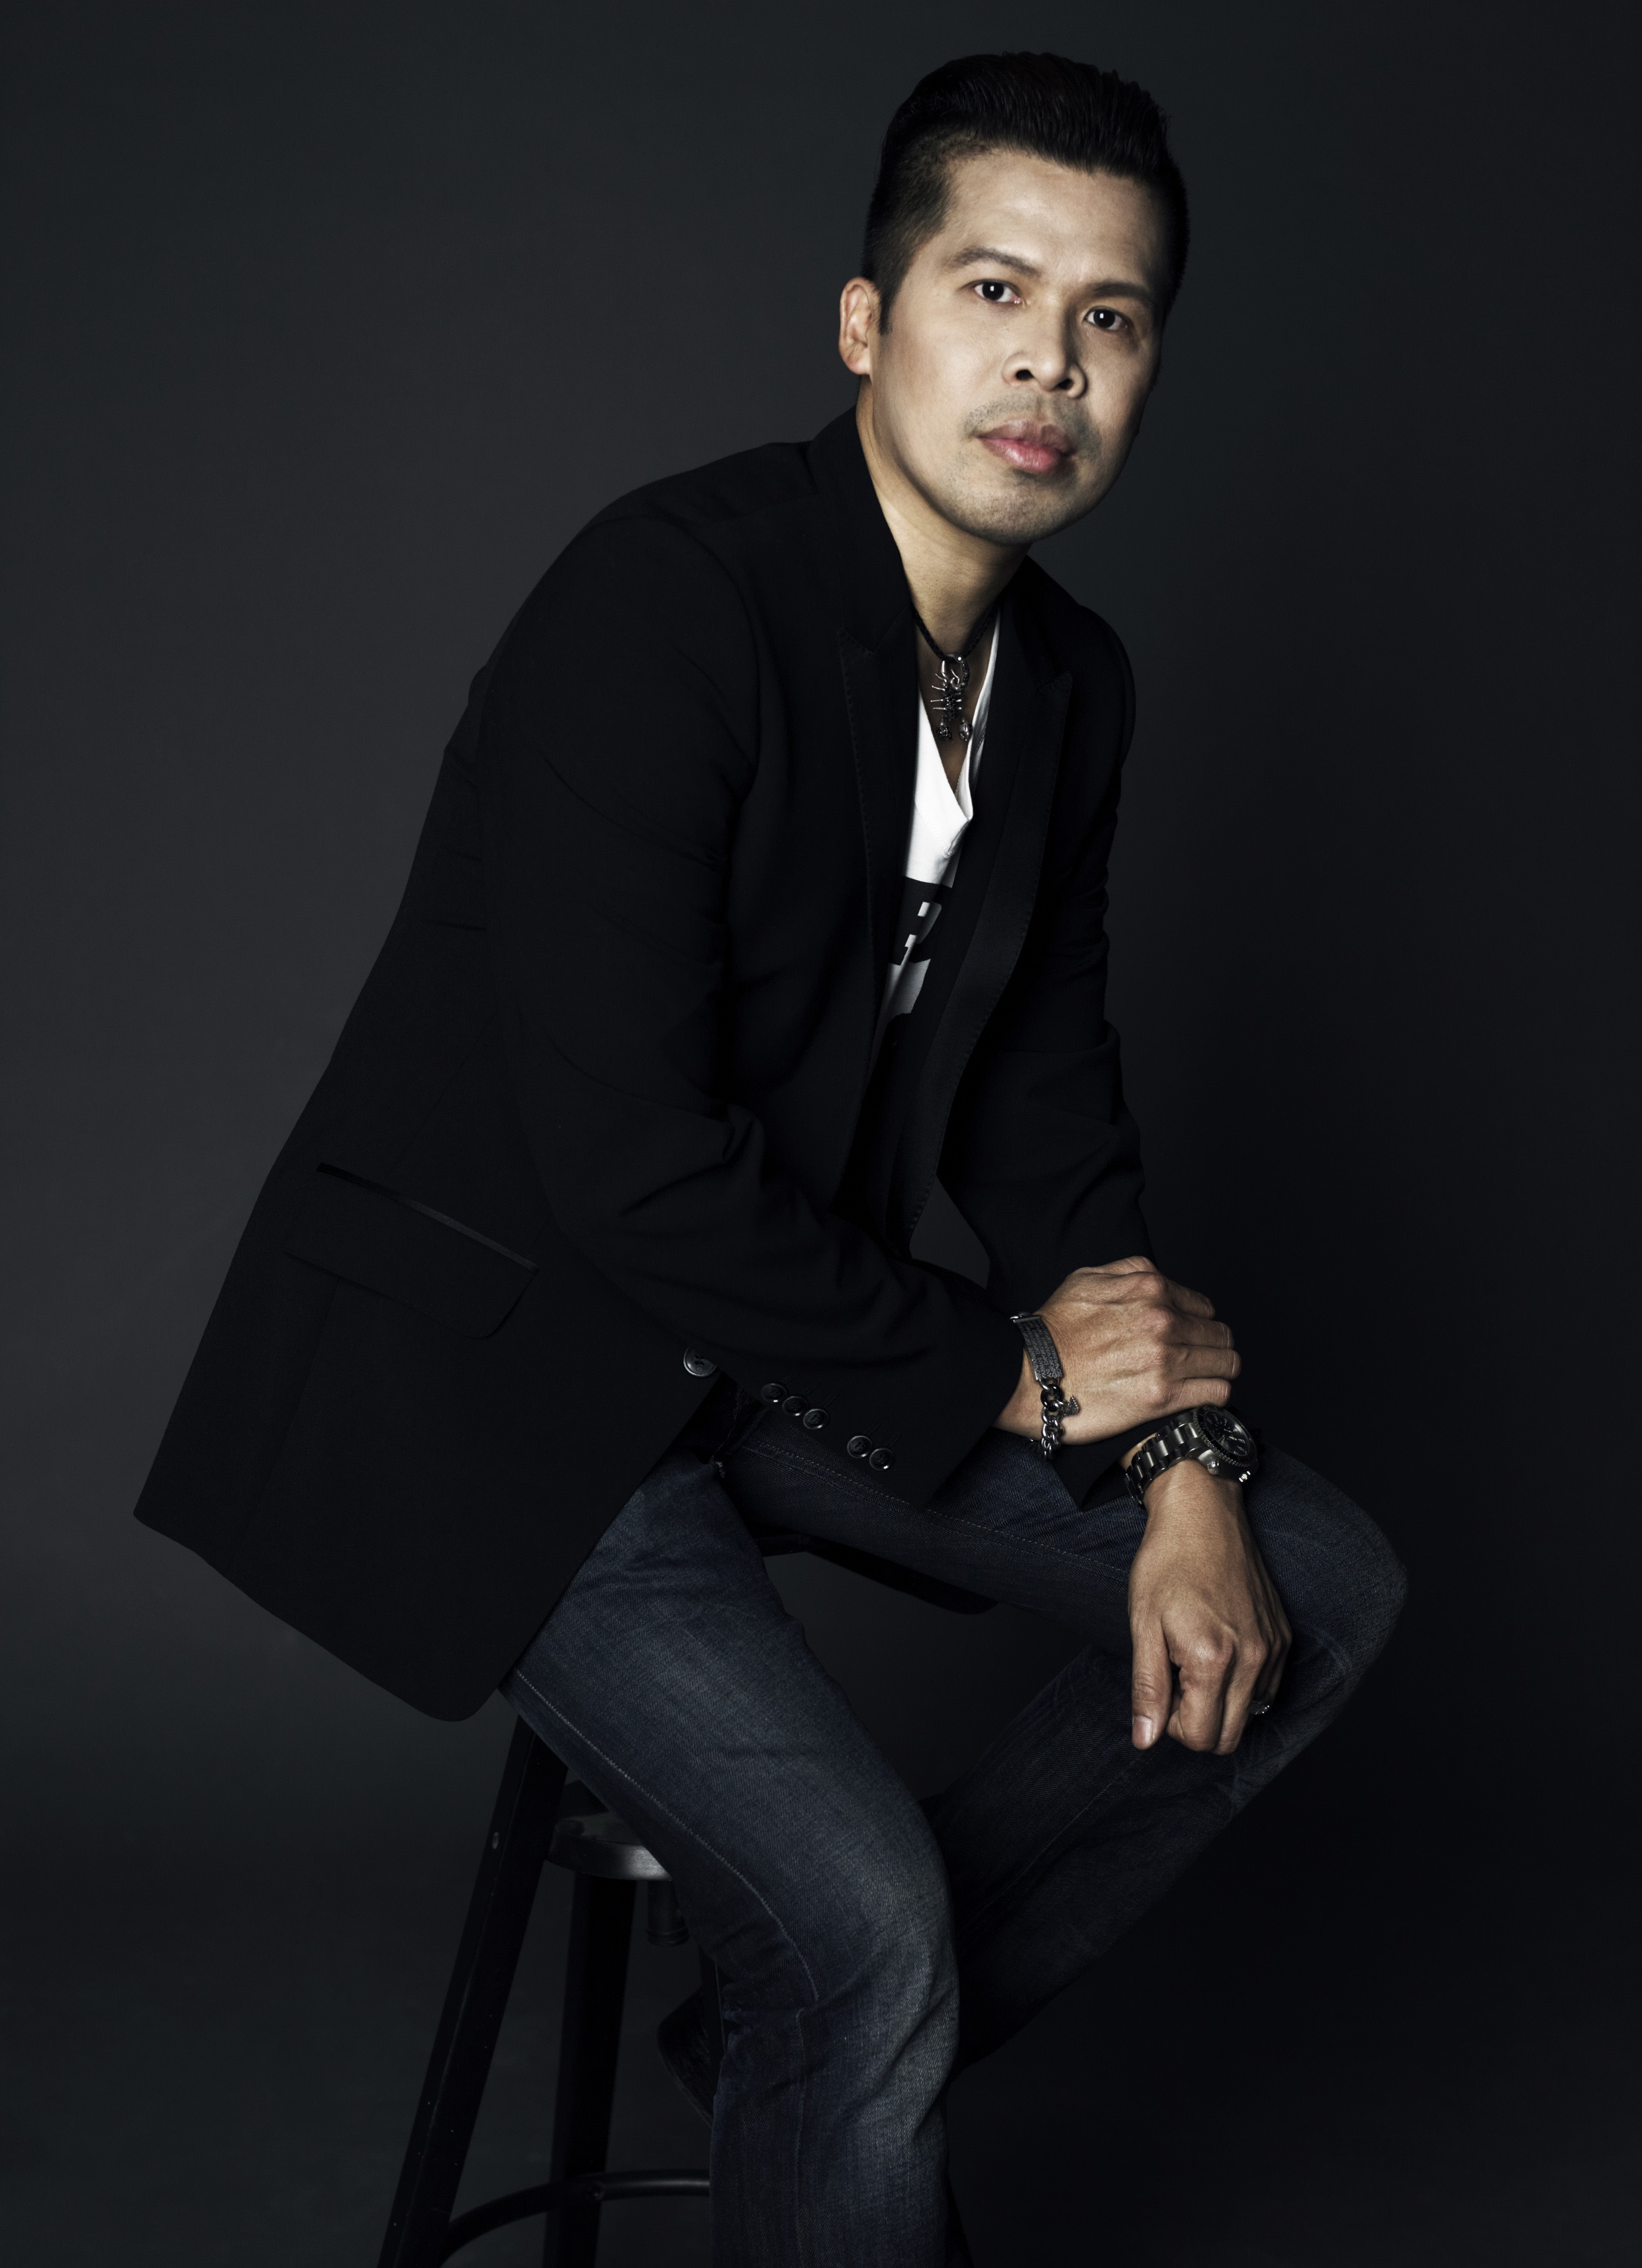 Malaysia Top Fashion Designer Of The Year Haute Couture Category 2014 Alvin Tay Erm Marketing Sdn Bhd 530975 W